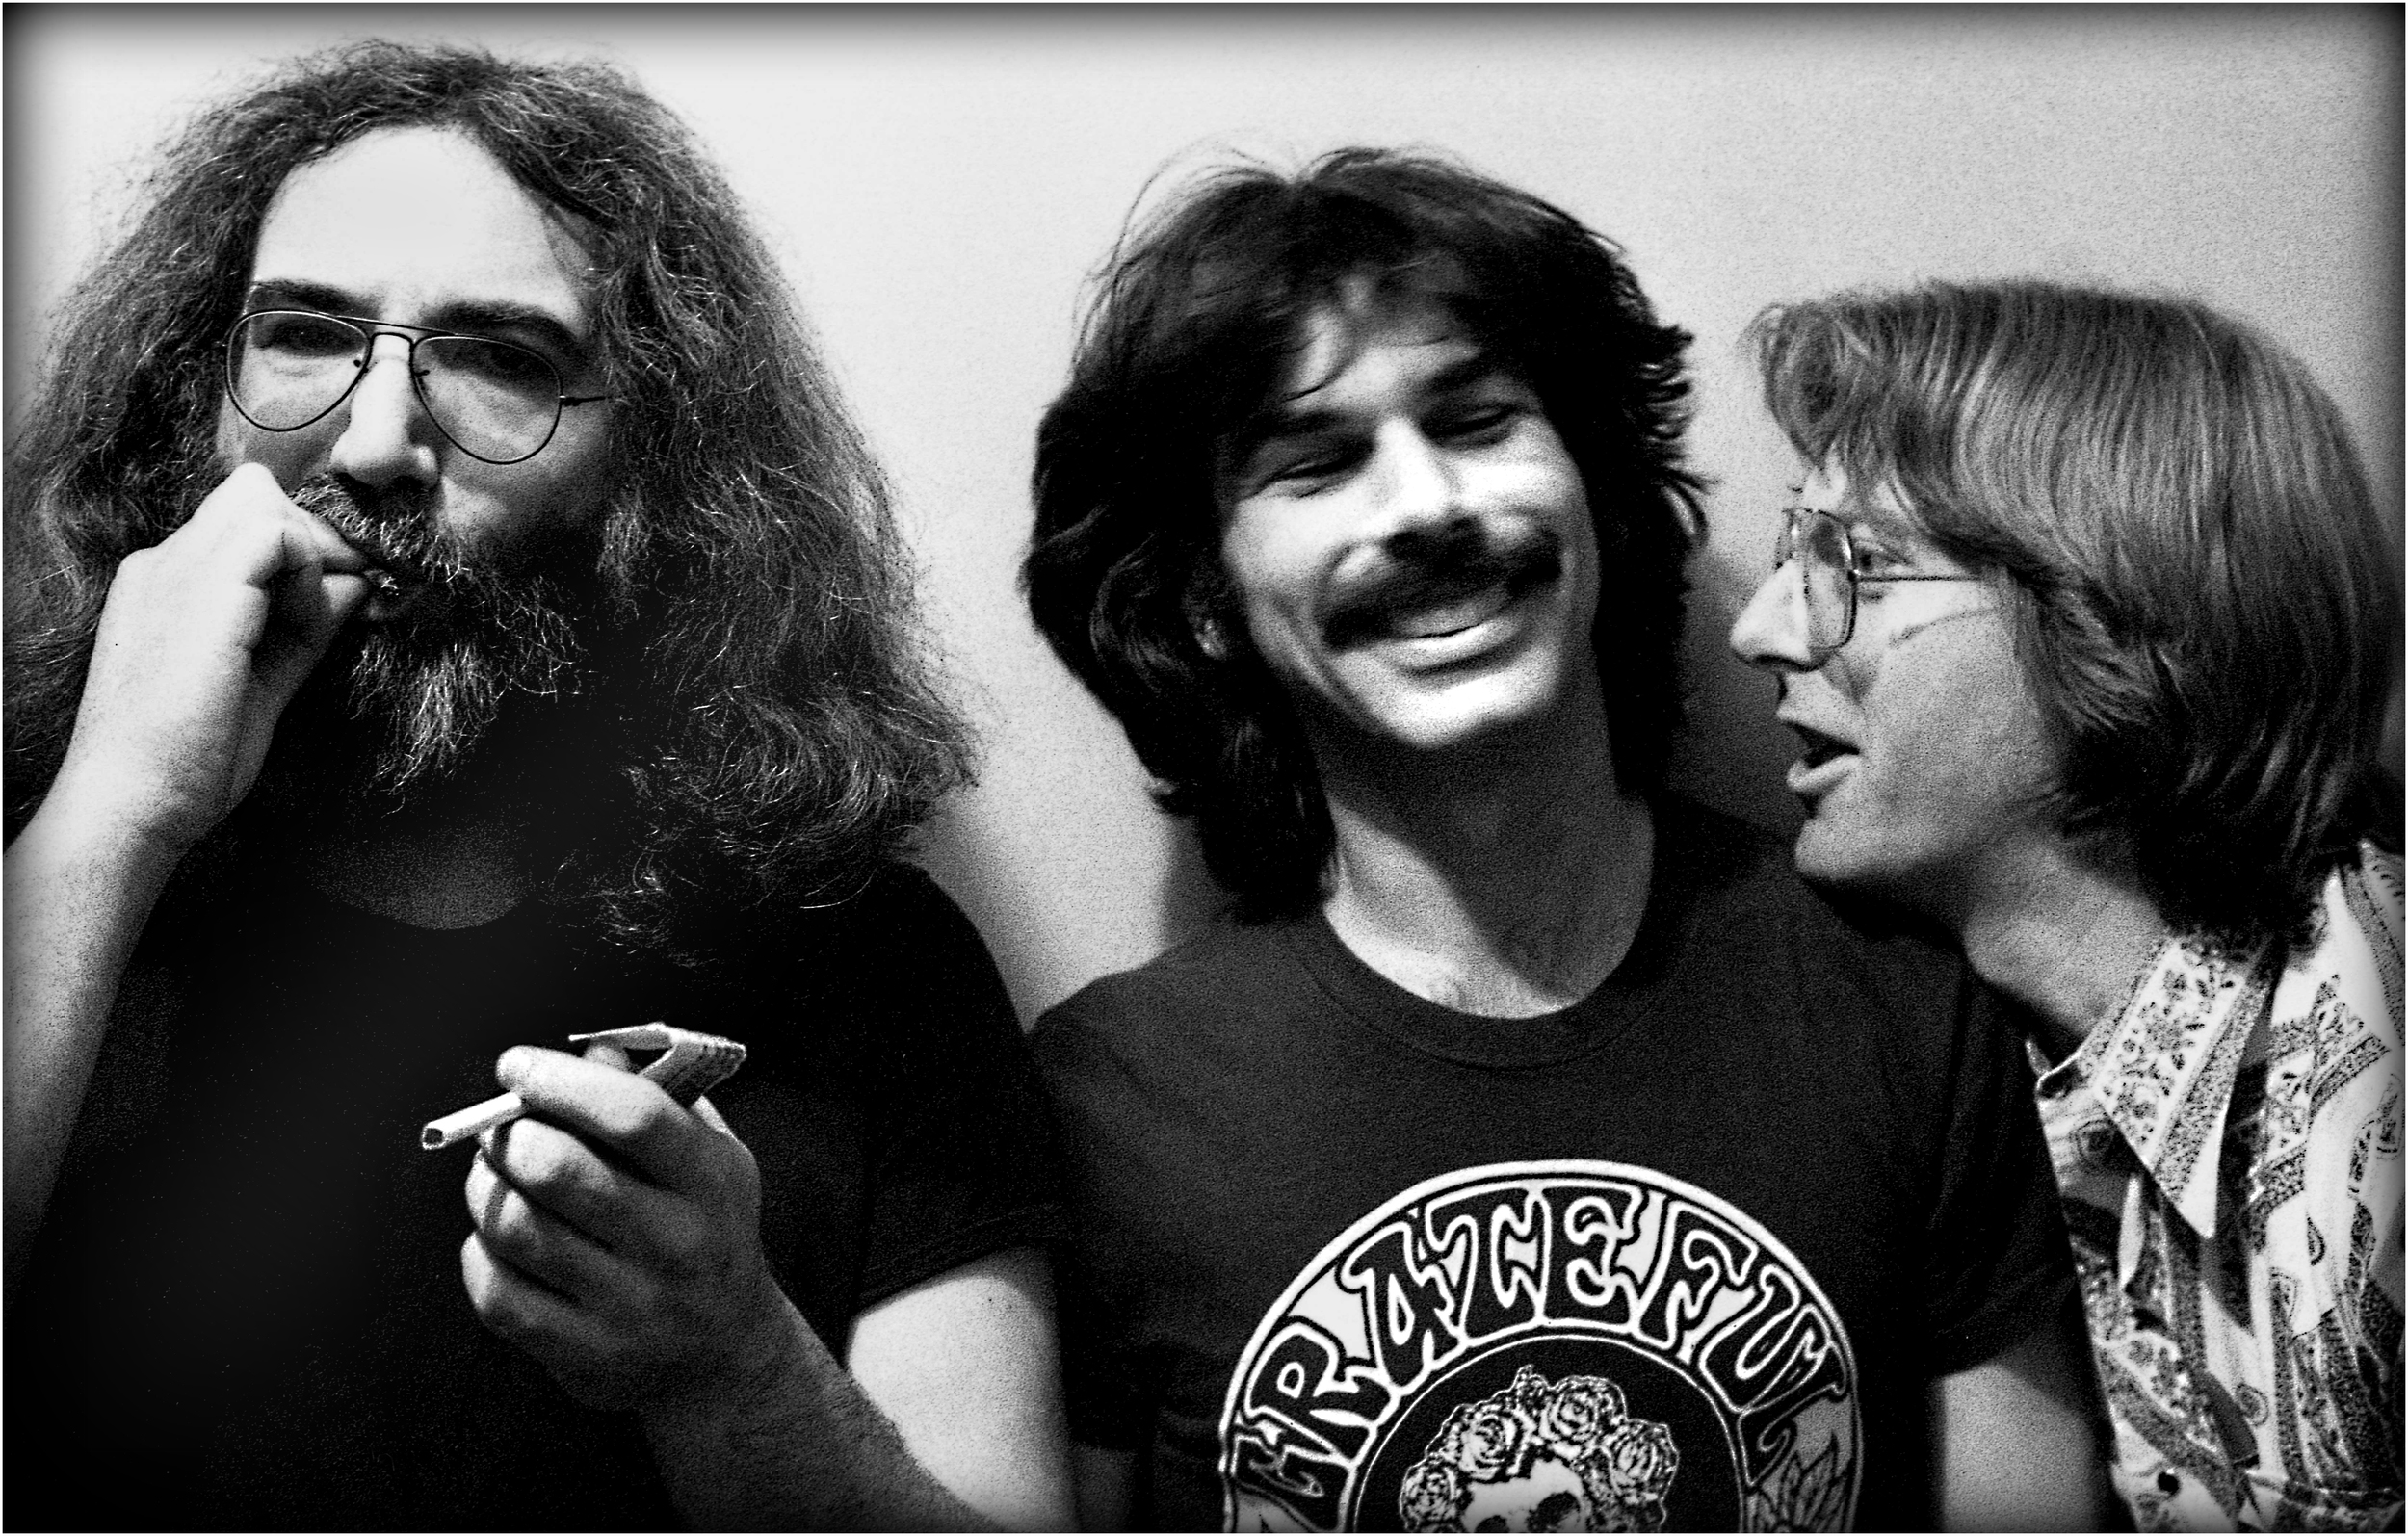 """A Pause Between Sets"" - Garcia, Hart and Lesh share refreshments backstage at the Palladium, NYC 1977."